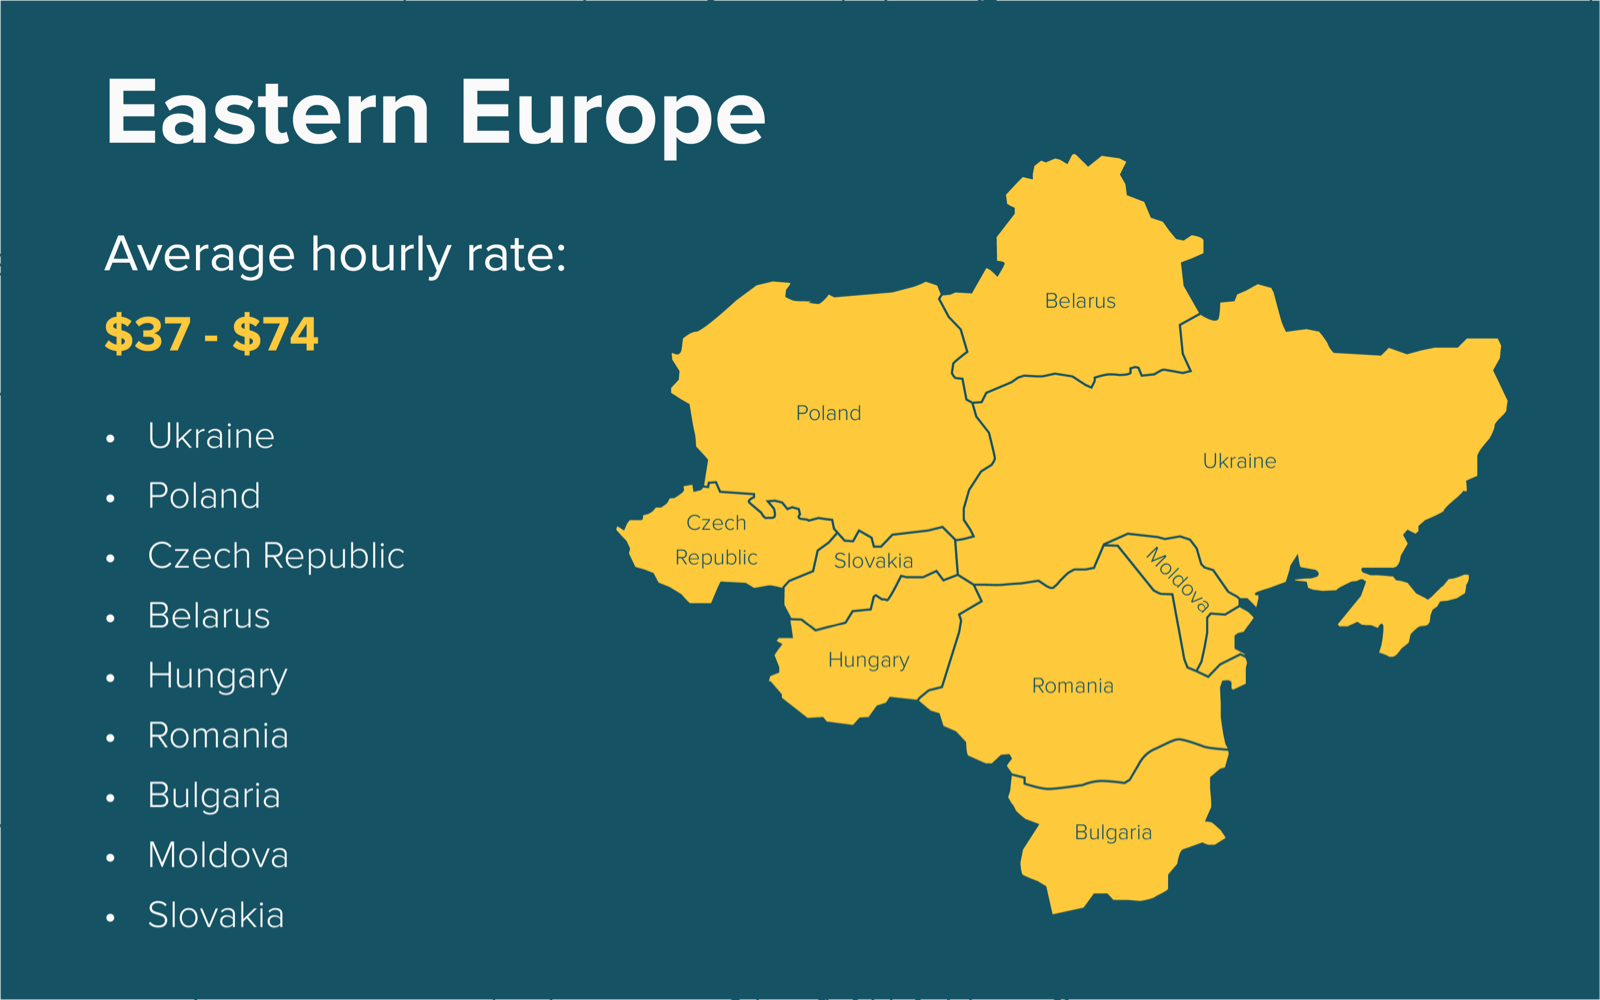 Software development hourly rates in Eastern Europe